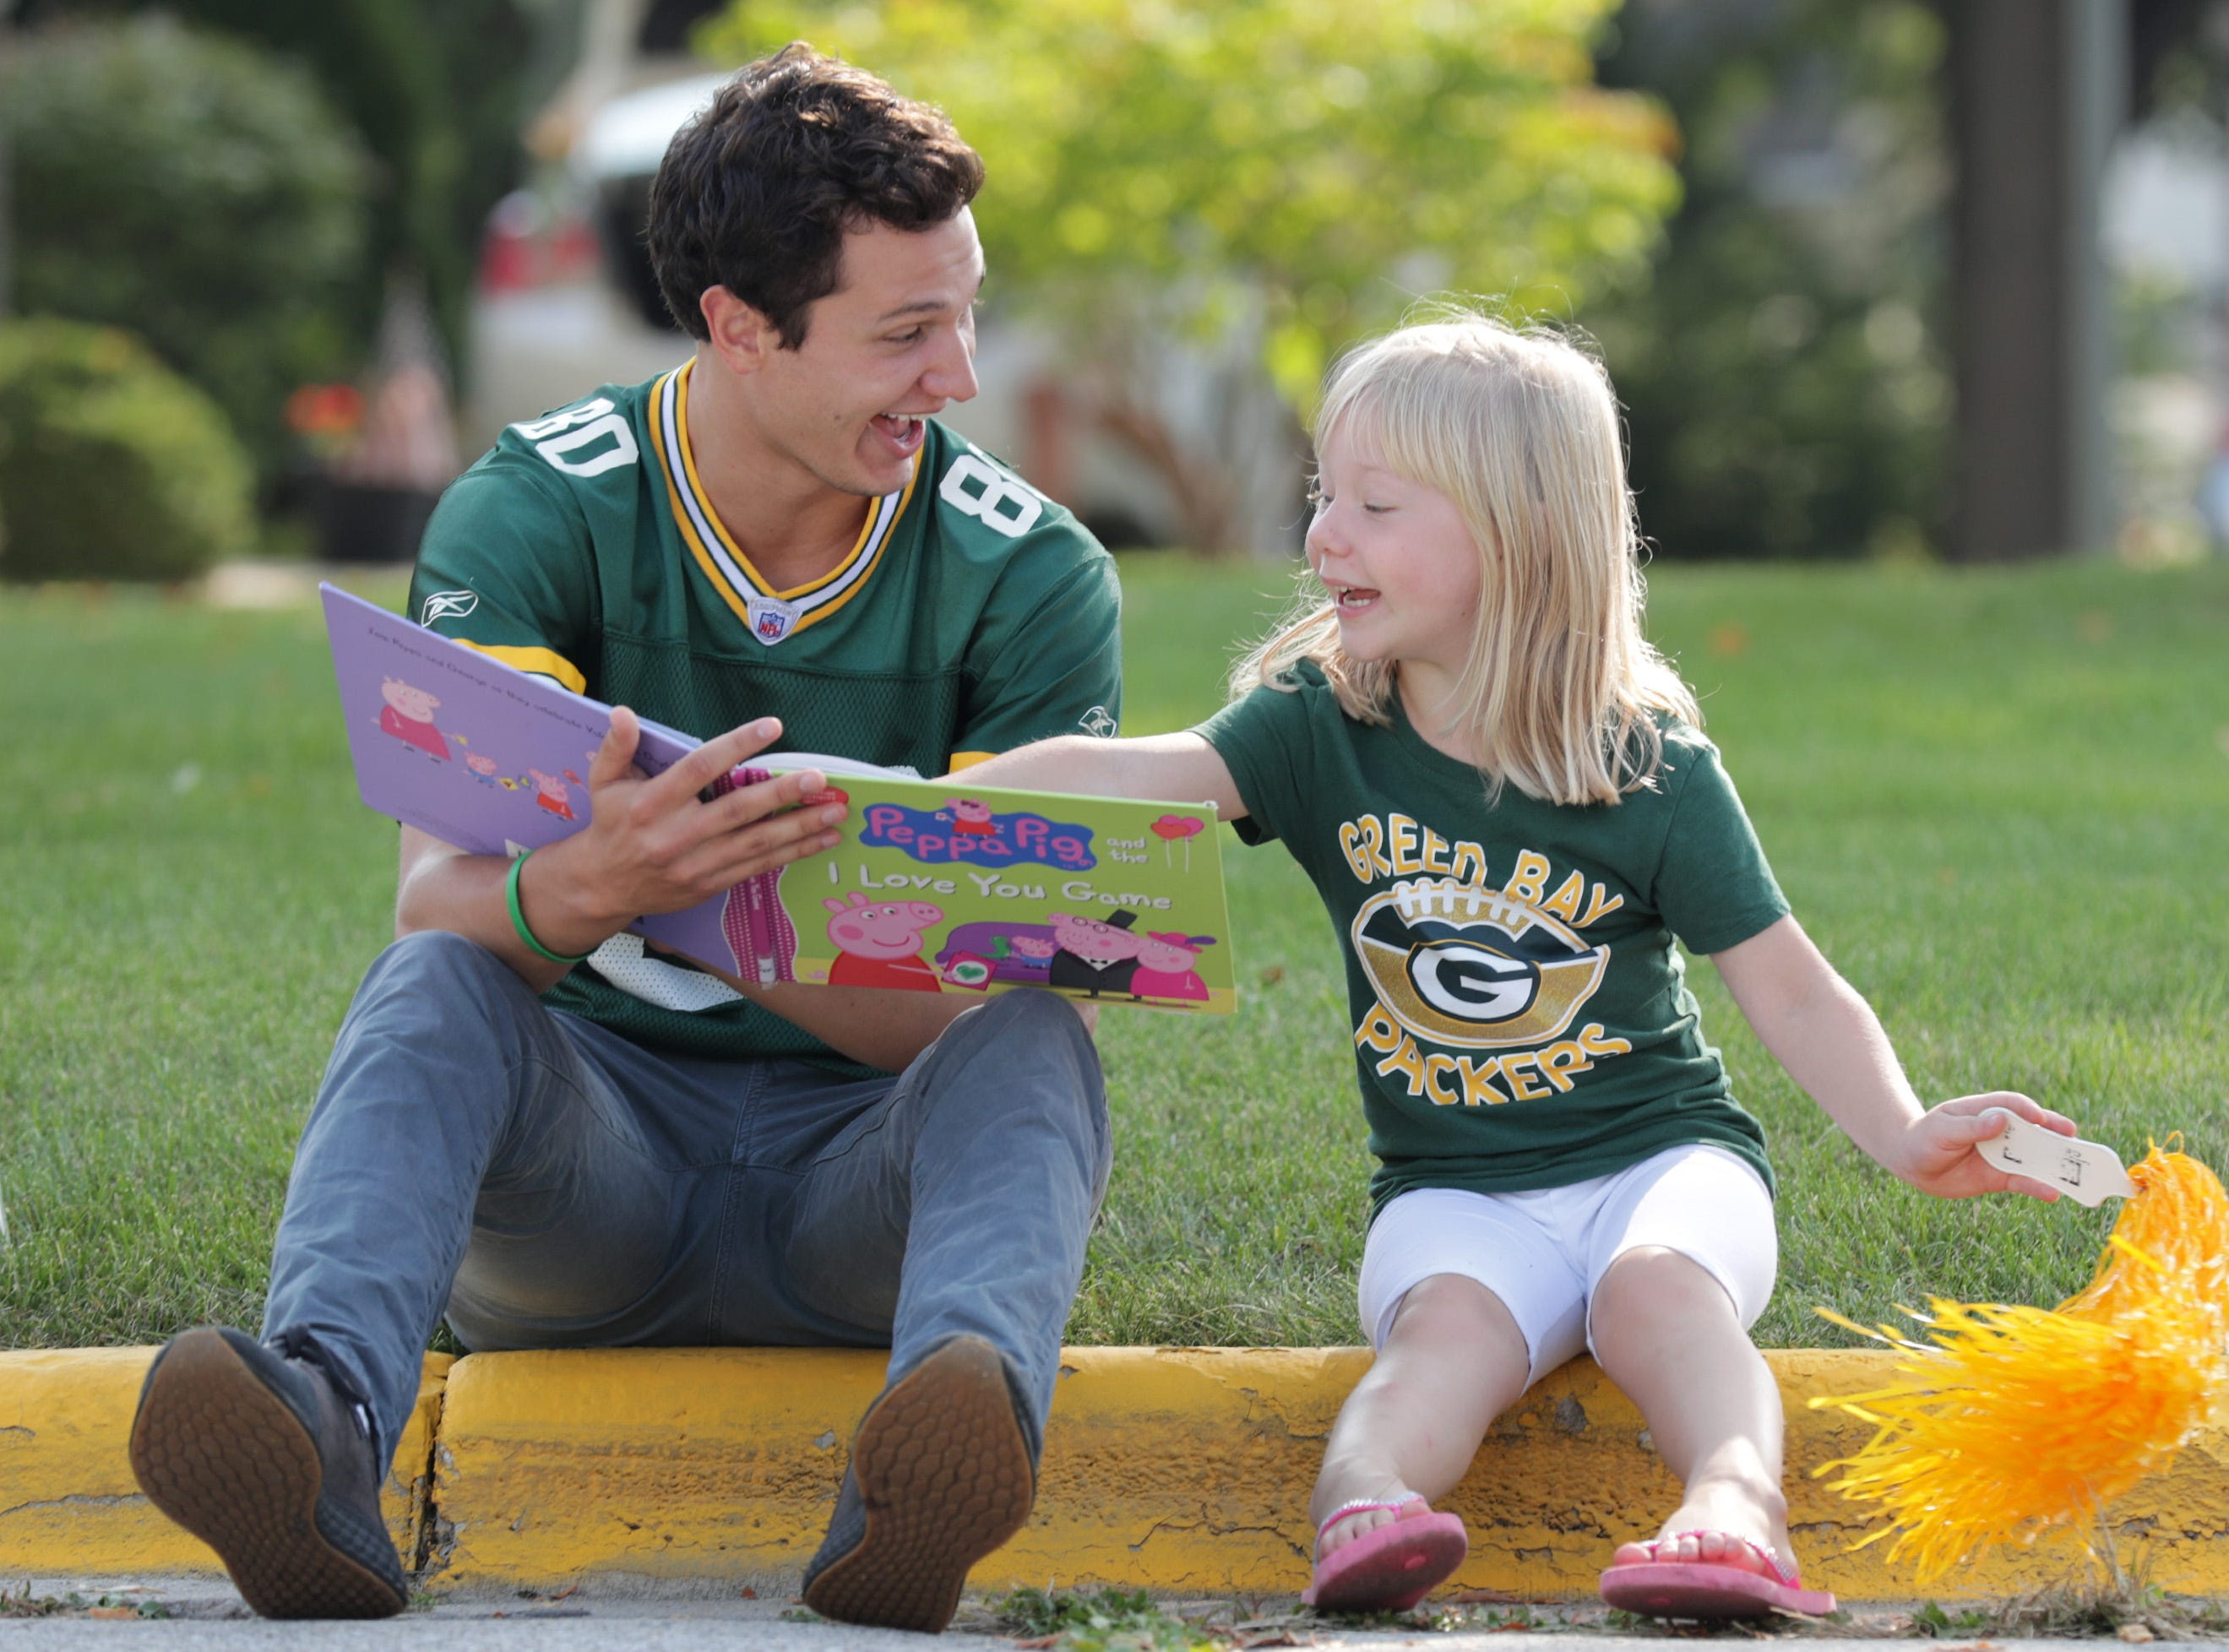 Neighbors Jake Imig and Lily Sota read a book together while helping to park cars on Wildwood Ln. before the Green Bay Packers host the Minnesota Vikings on Sunday, September 16, 2018, at Lambeau Field in Green Bay, Wis. Wm. Glasheen/USA TODAY NETWORK-Wisconsin.